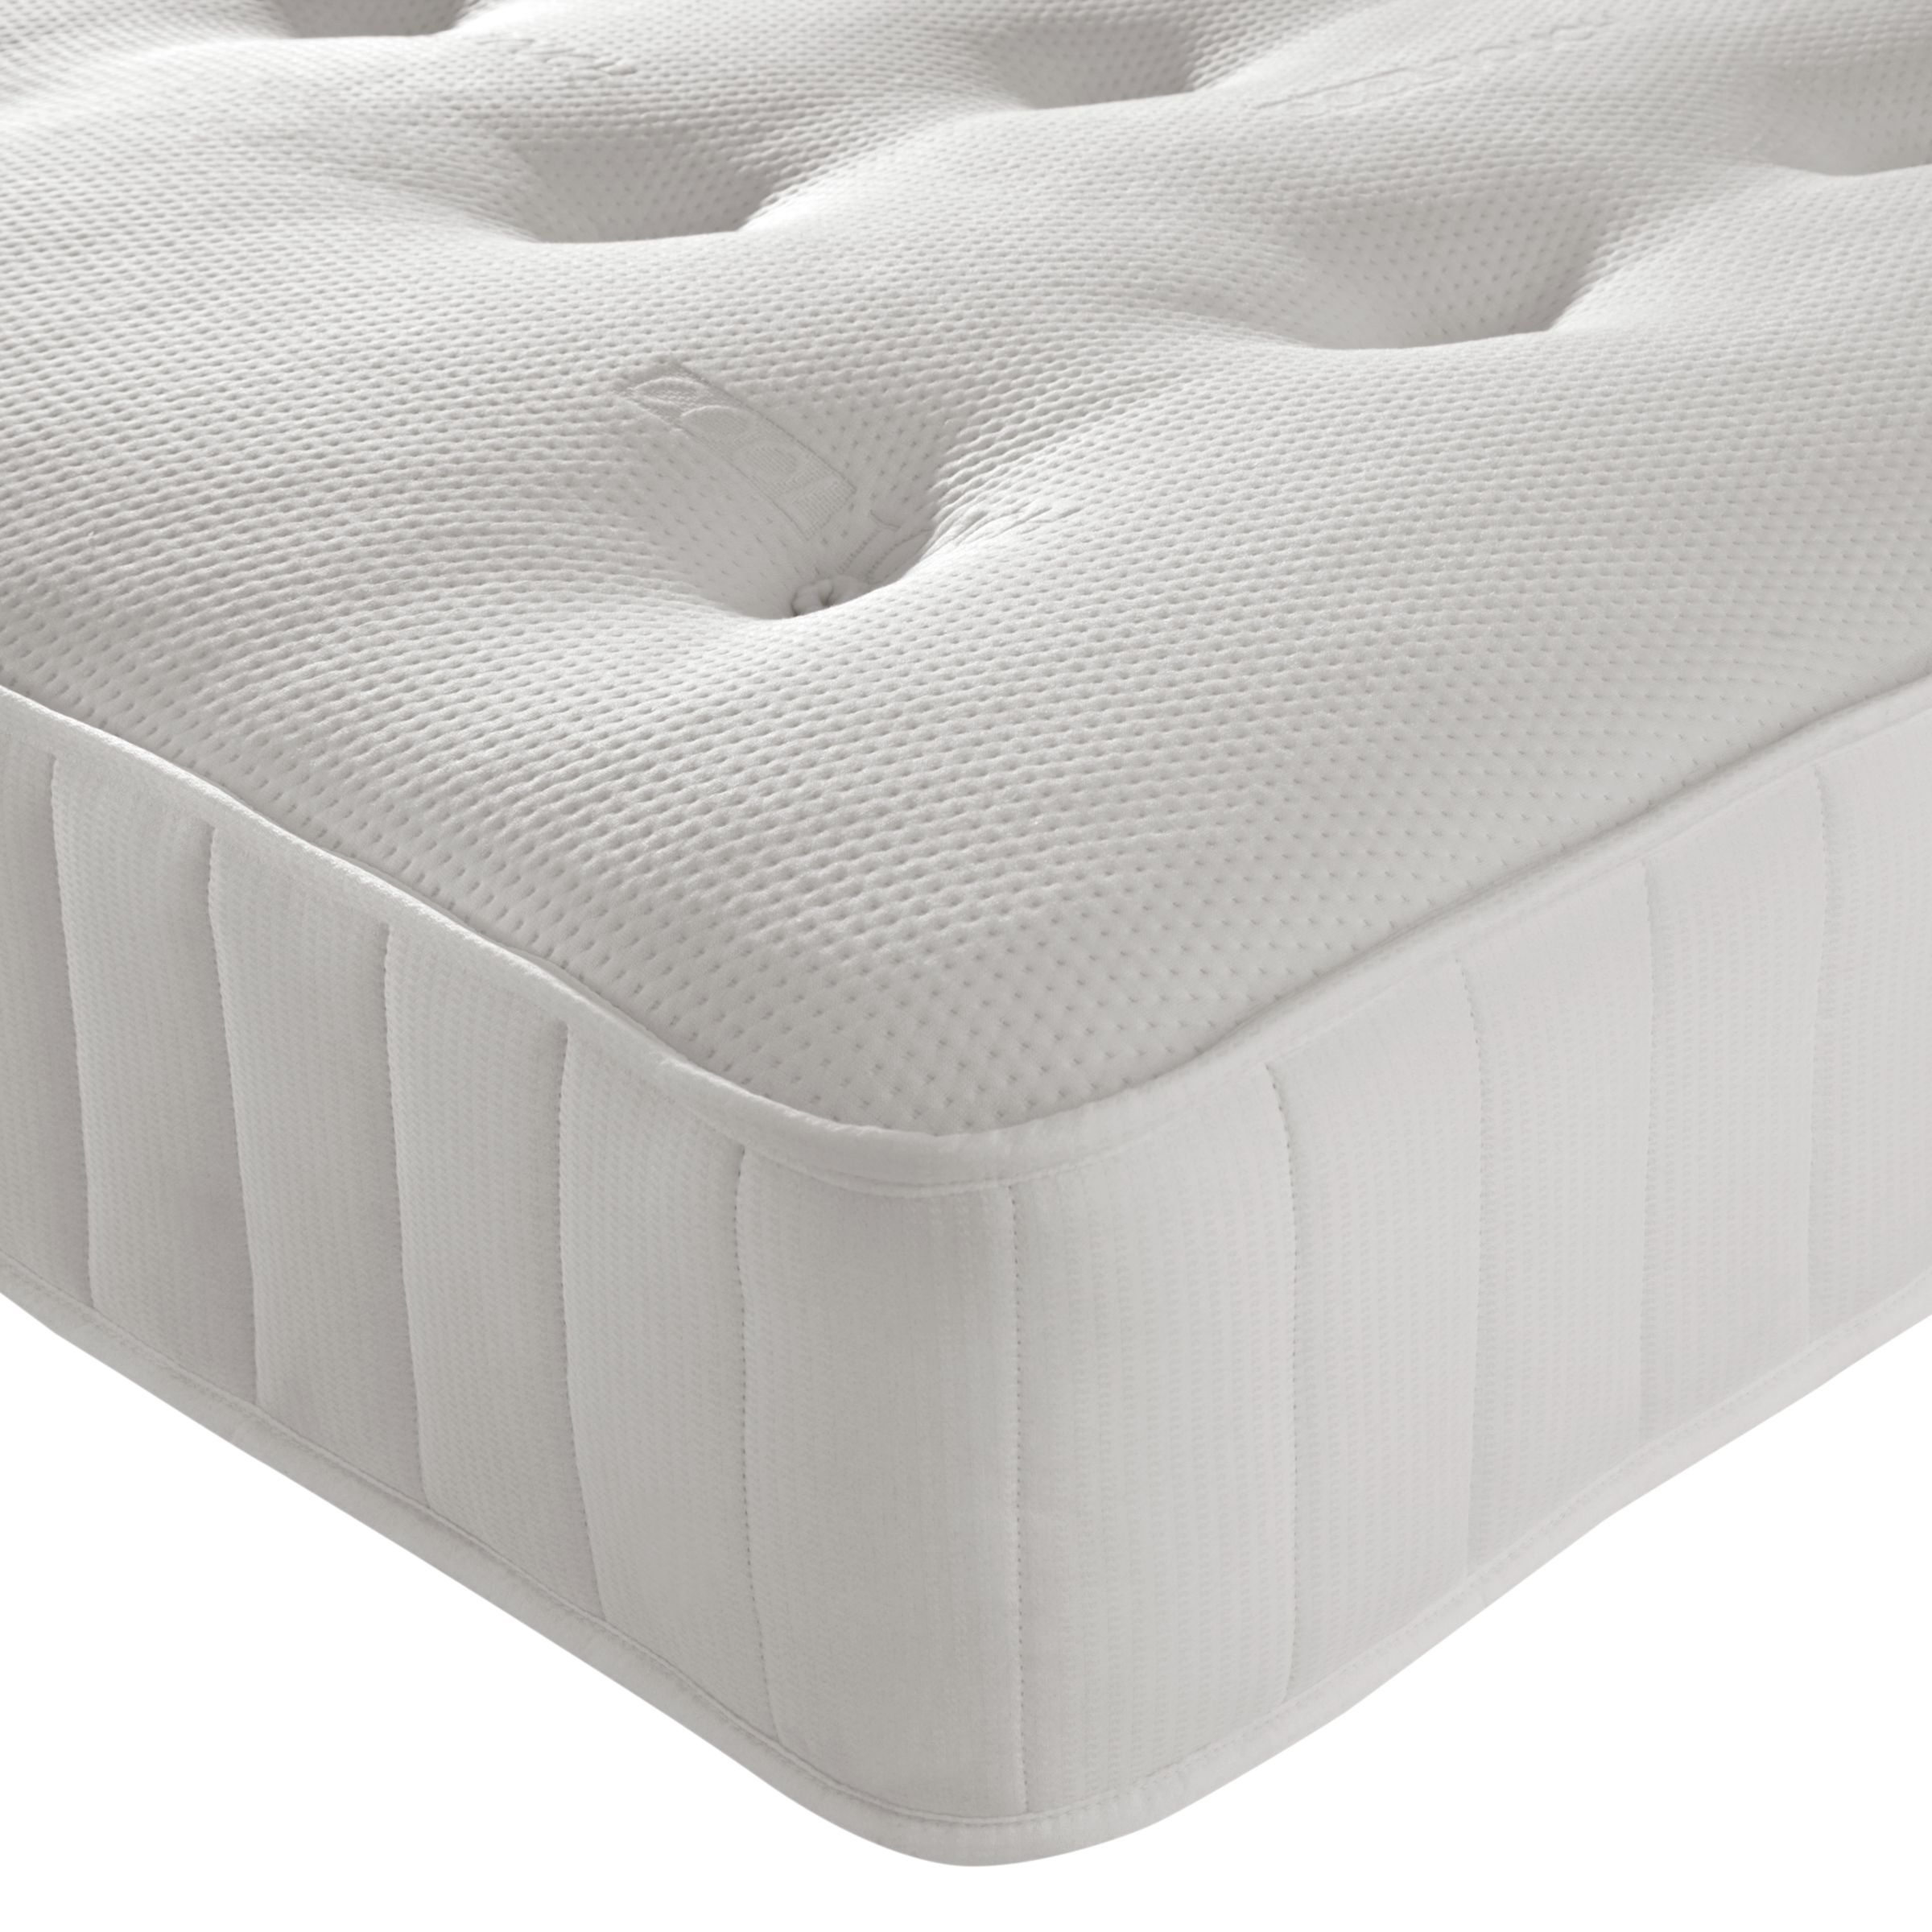 John Lewis Essentials Pocket 1000 Mattress, Small Double